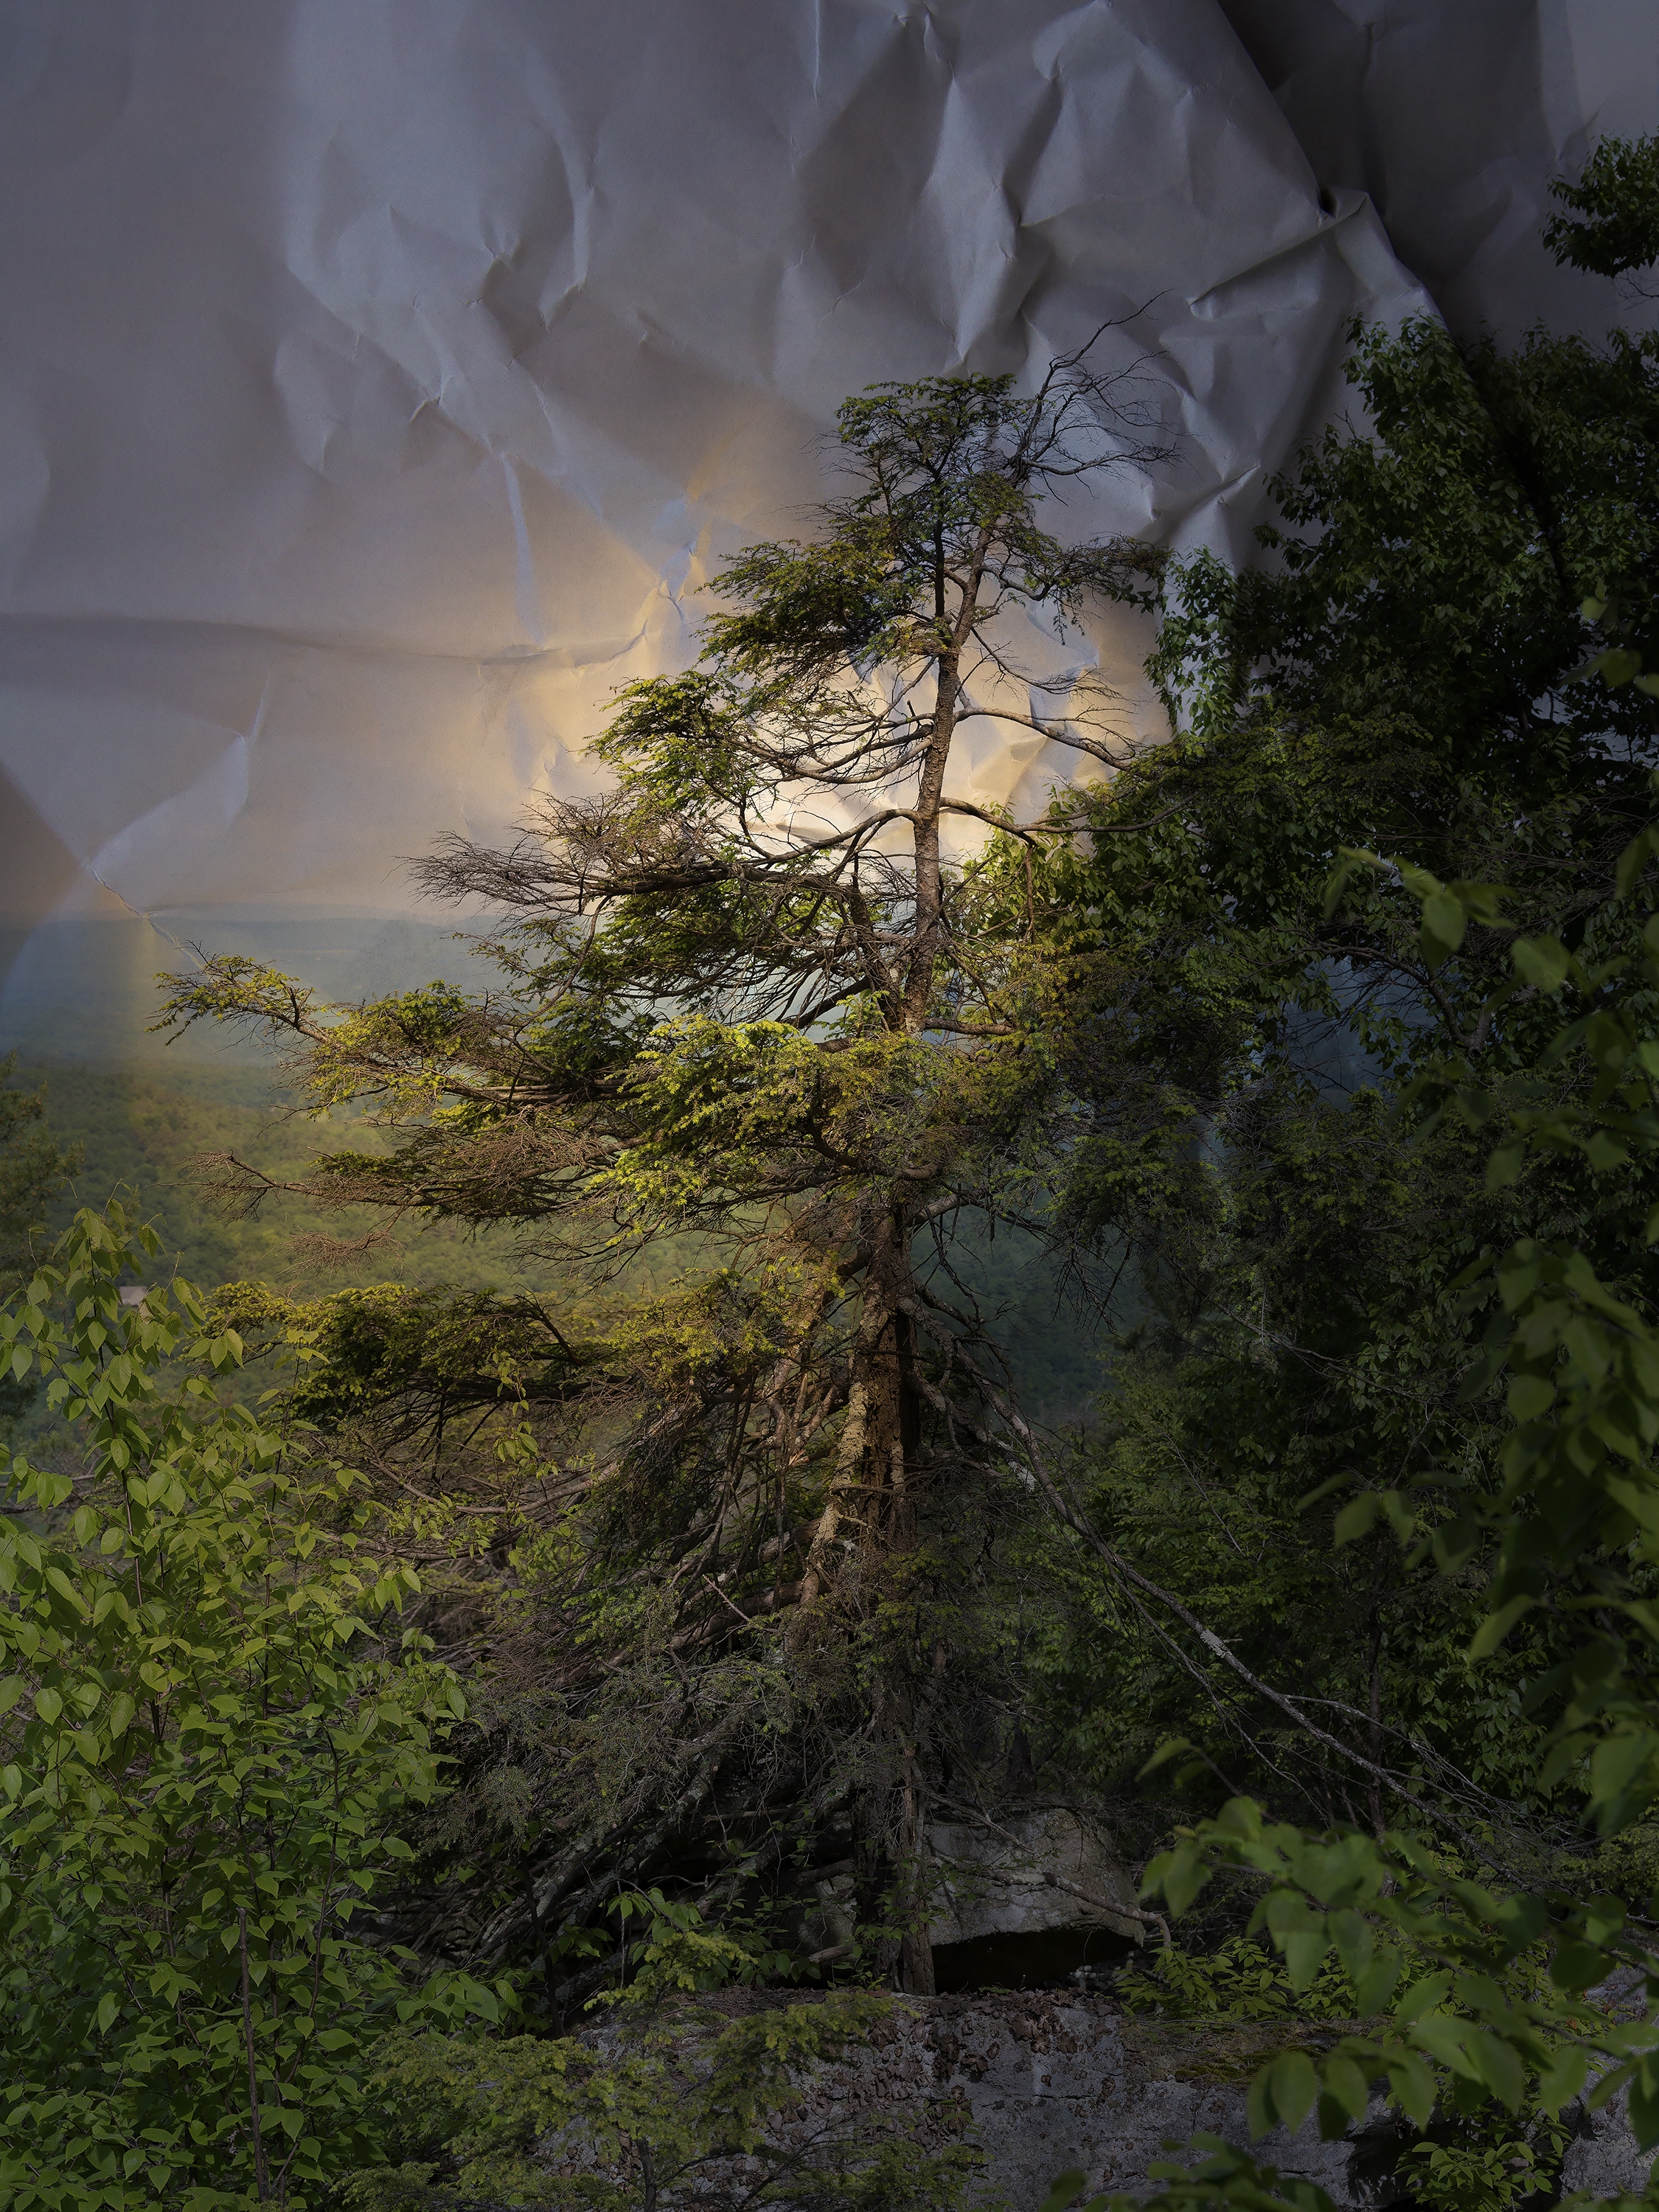 © Laura Plageman, Hemlock, Mohonk Preserve, NY, 2019  Commissioned Photographer LightField Festival 2019 | Photo + Synthesis